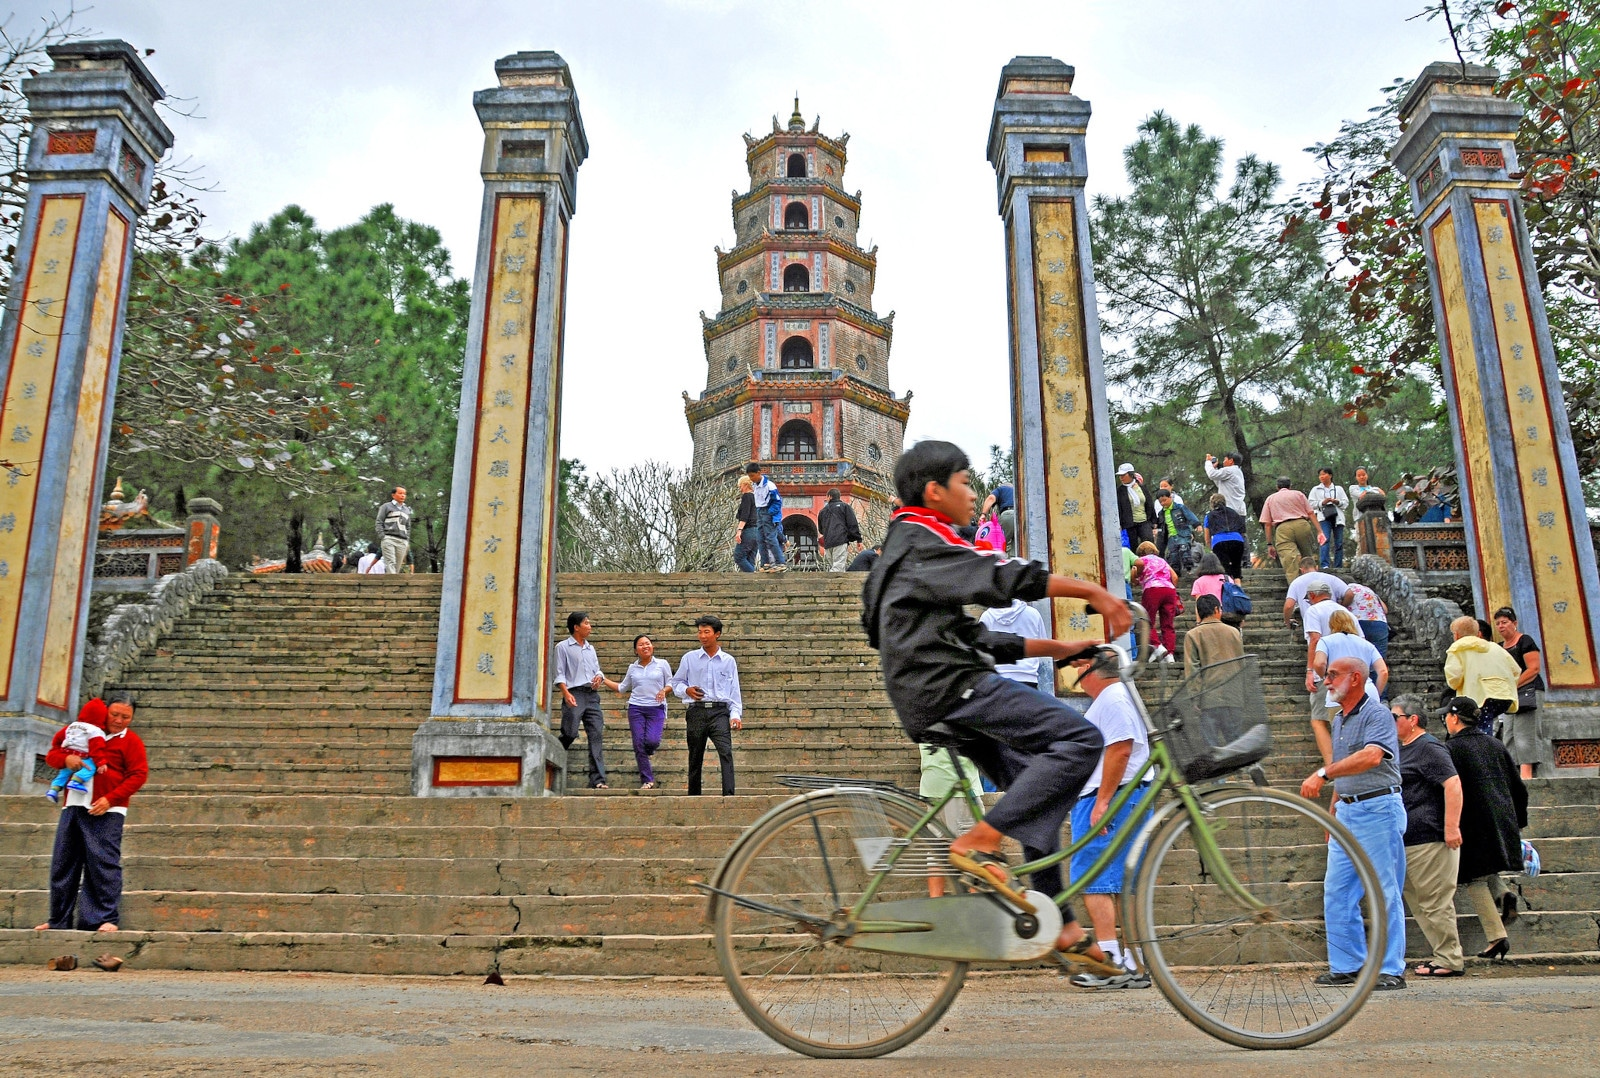 Image of the Thien Mu Pagoda in the Imperial City of Hue, Vietnam